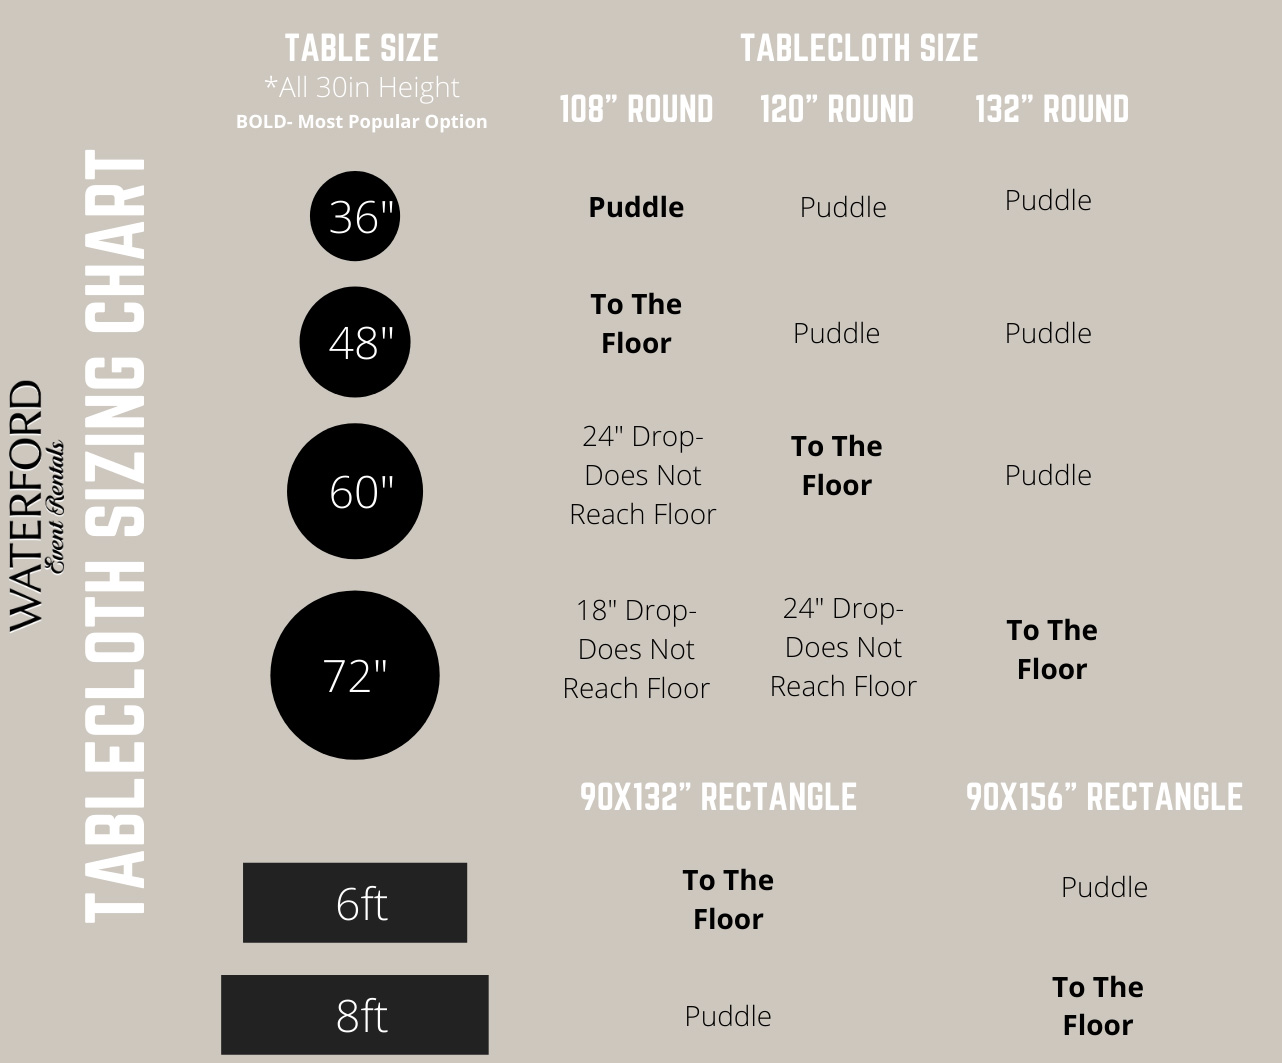 waterford-event-rentals-faq-tablecloth-sizing-chart